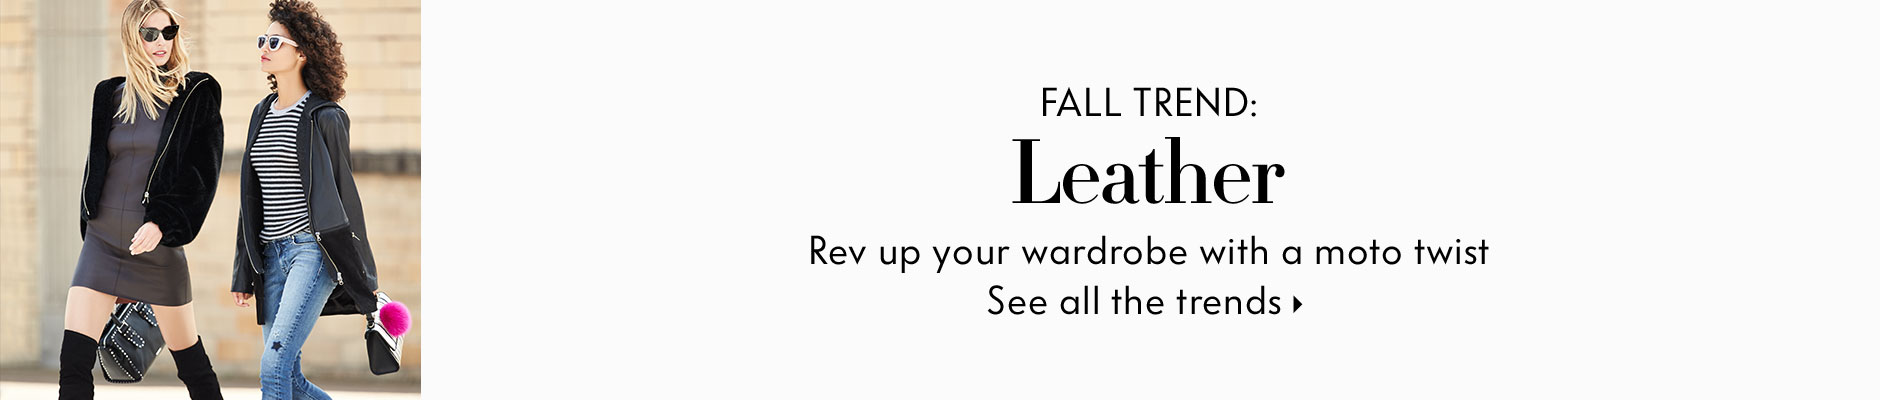 Fall Trend: Leather - Rev up your wardrobe with a motto twist